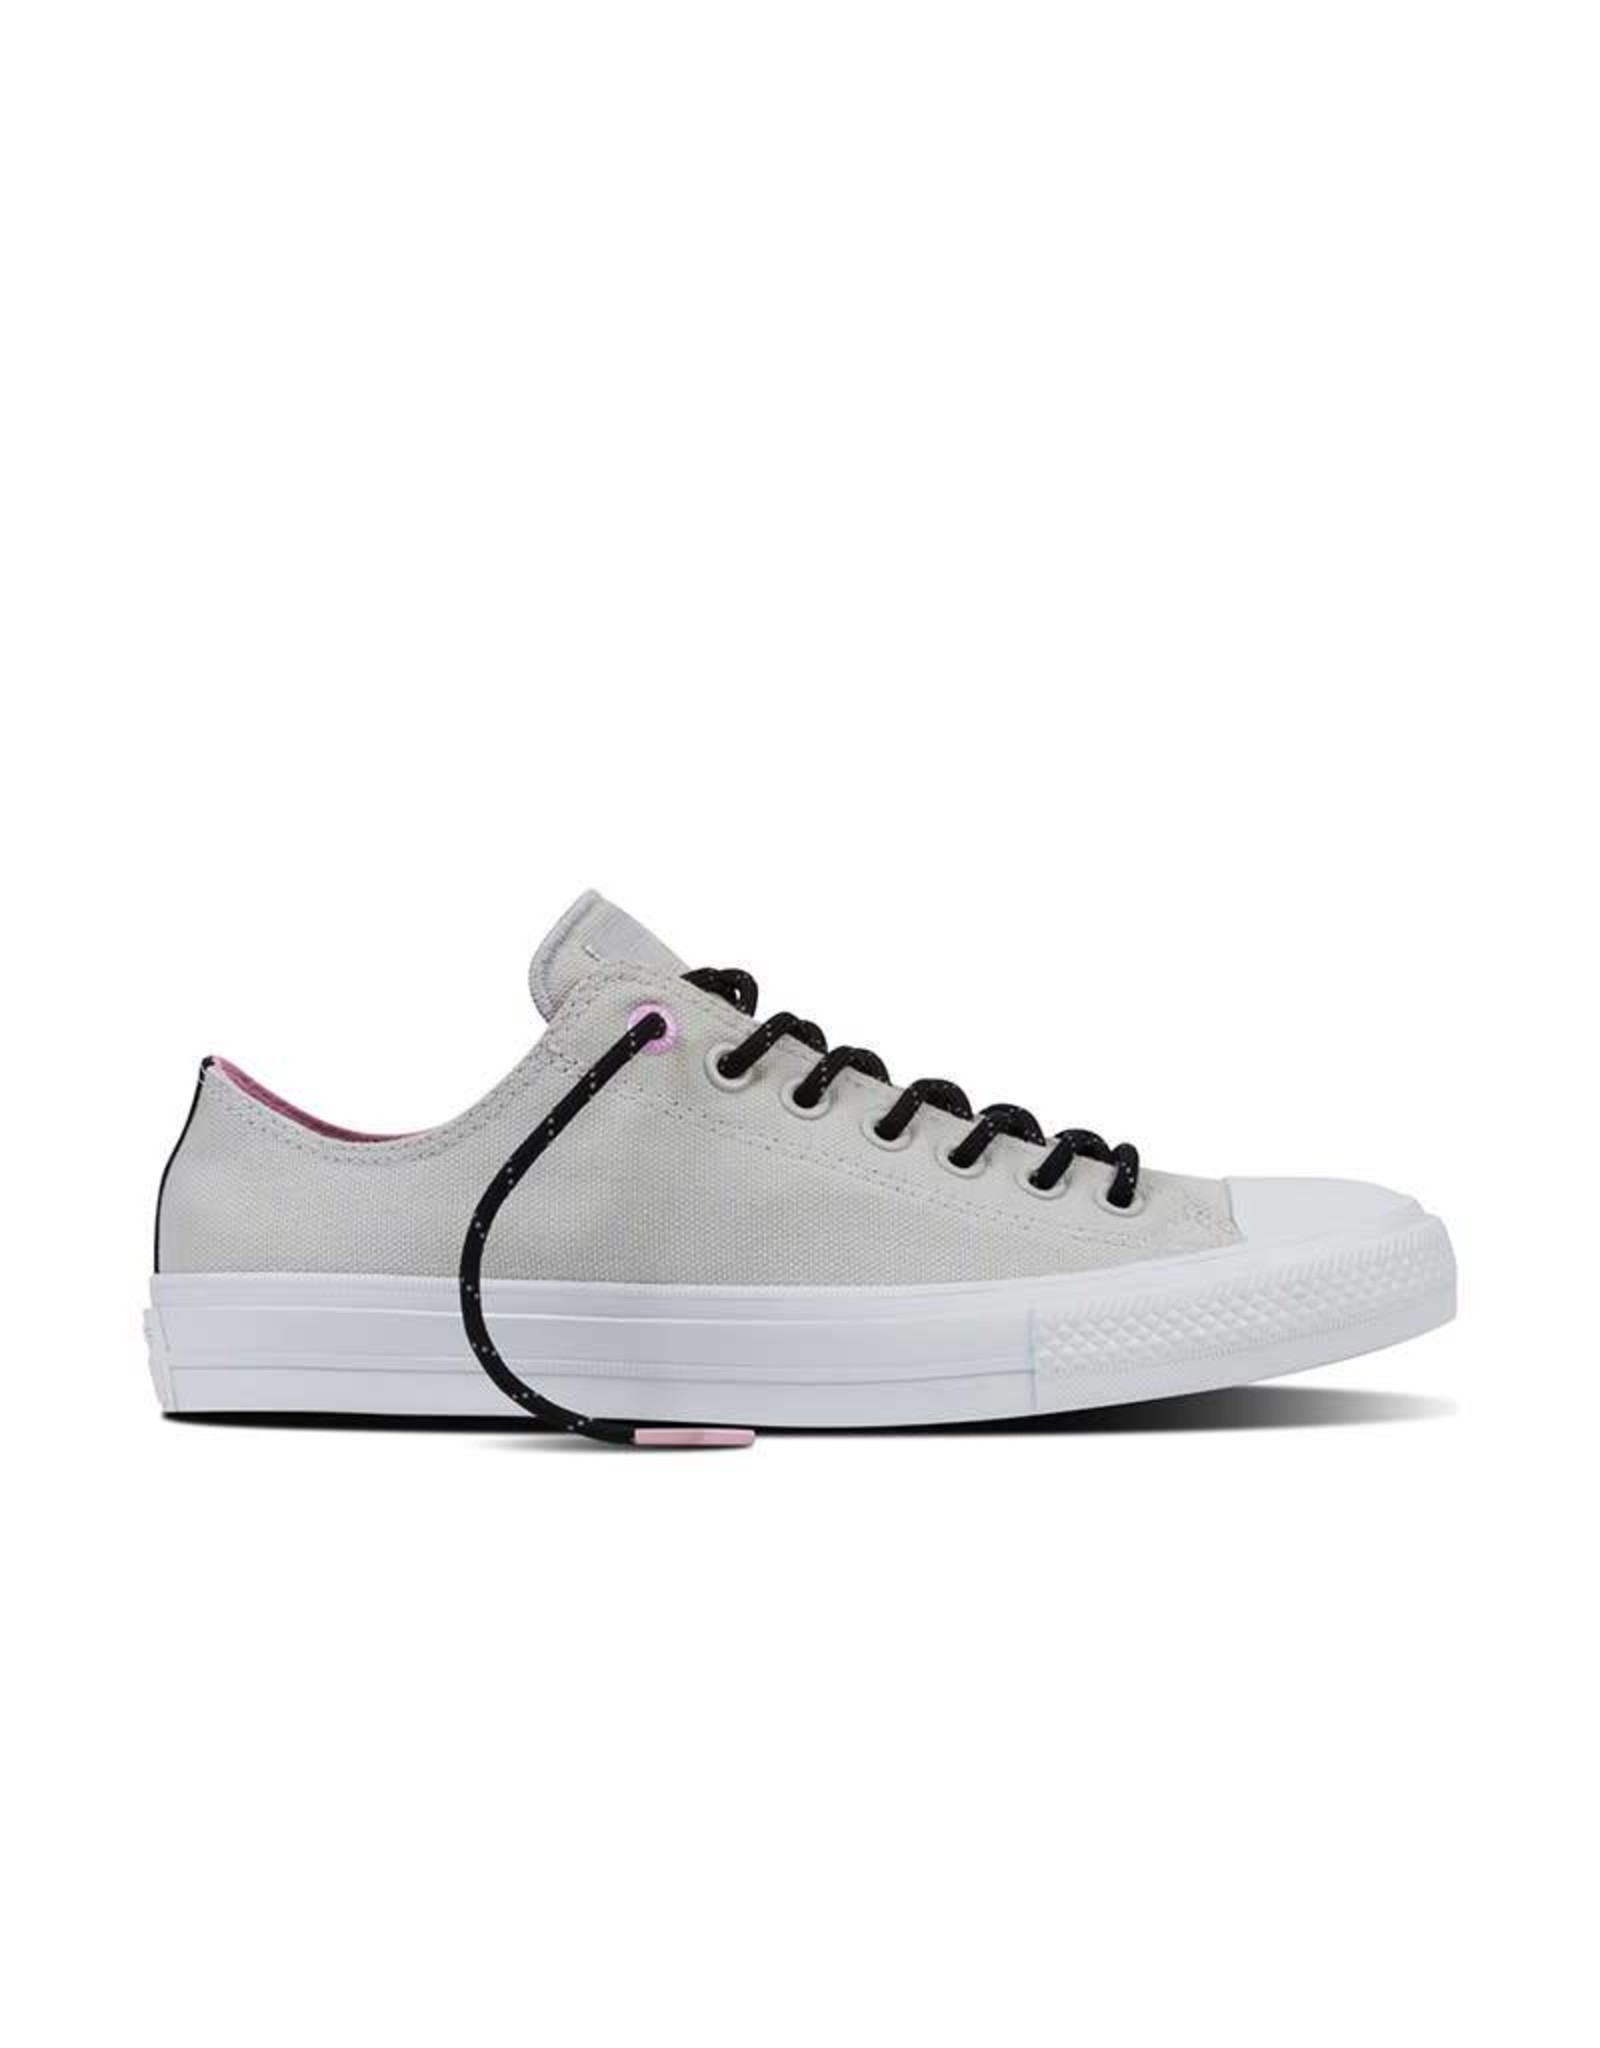 CONVERSE CHUCK TAYLOR II OX MOUSE/WHITE/ICY PINK CT2LICY-154015C